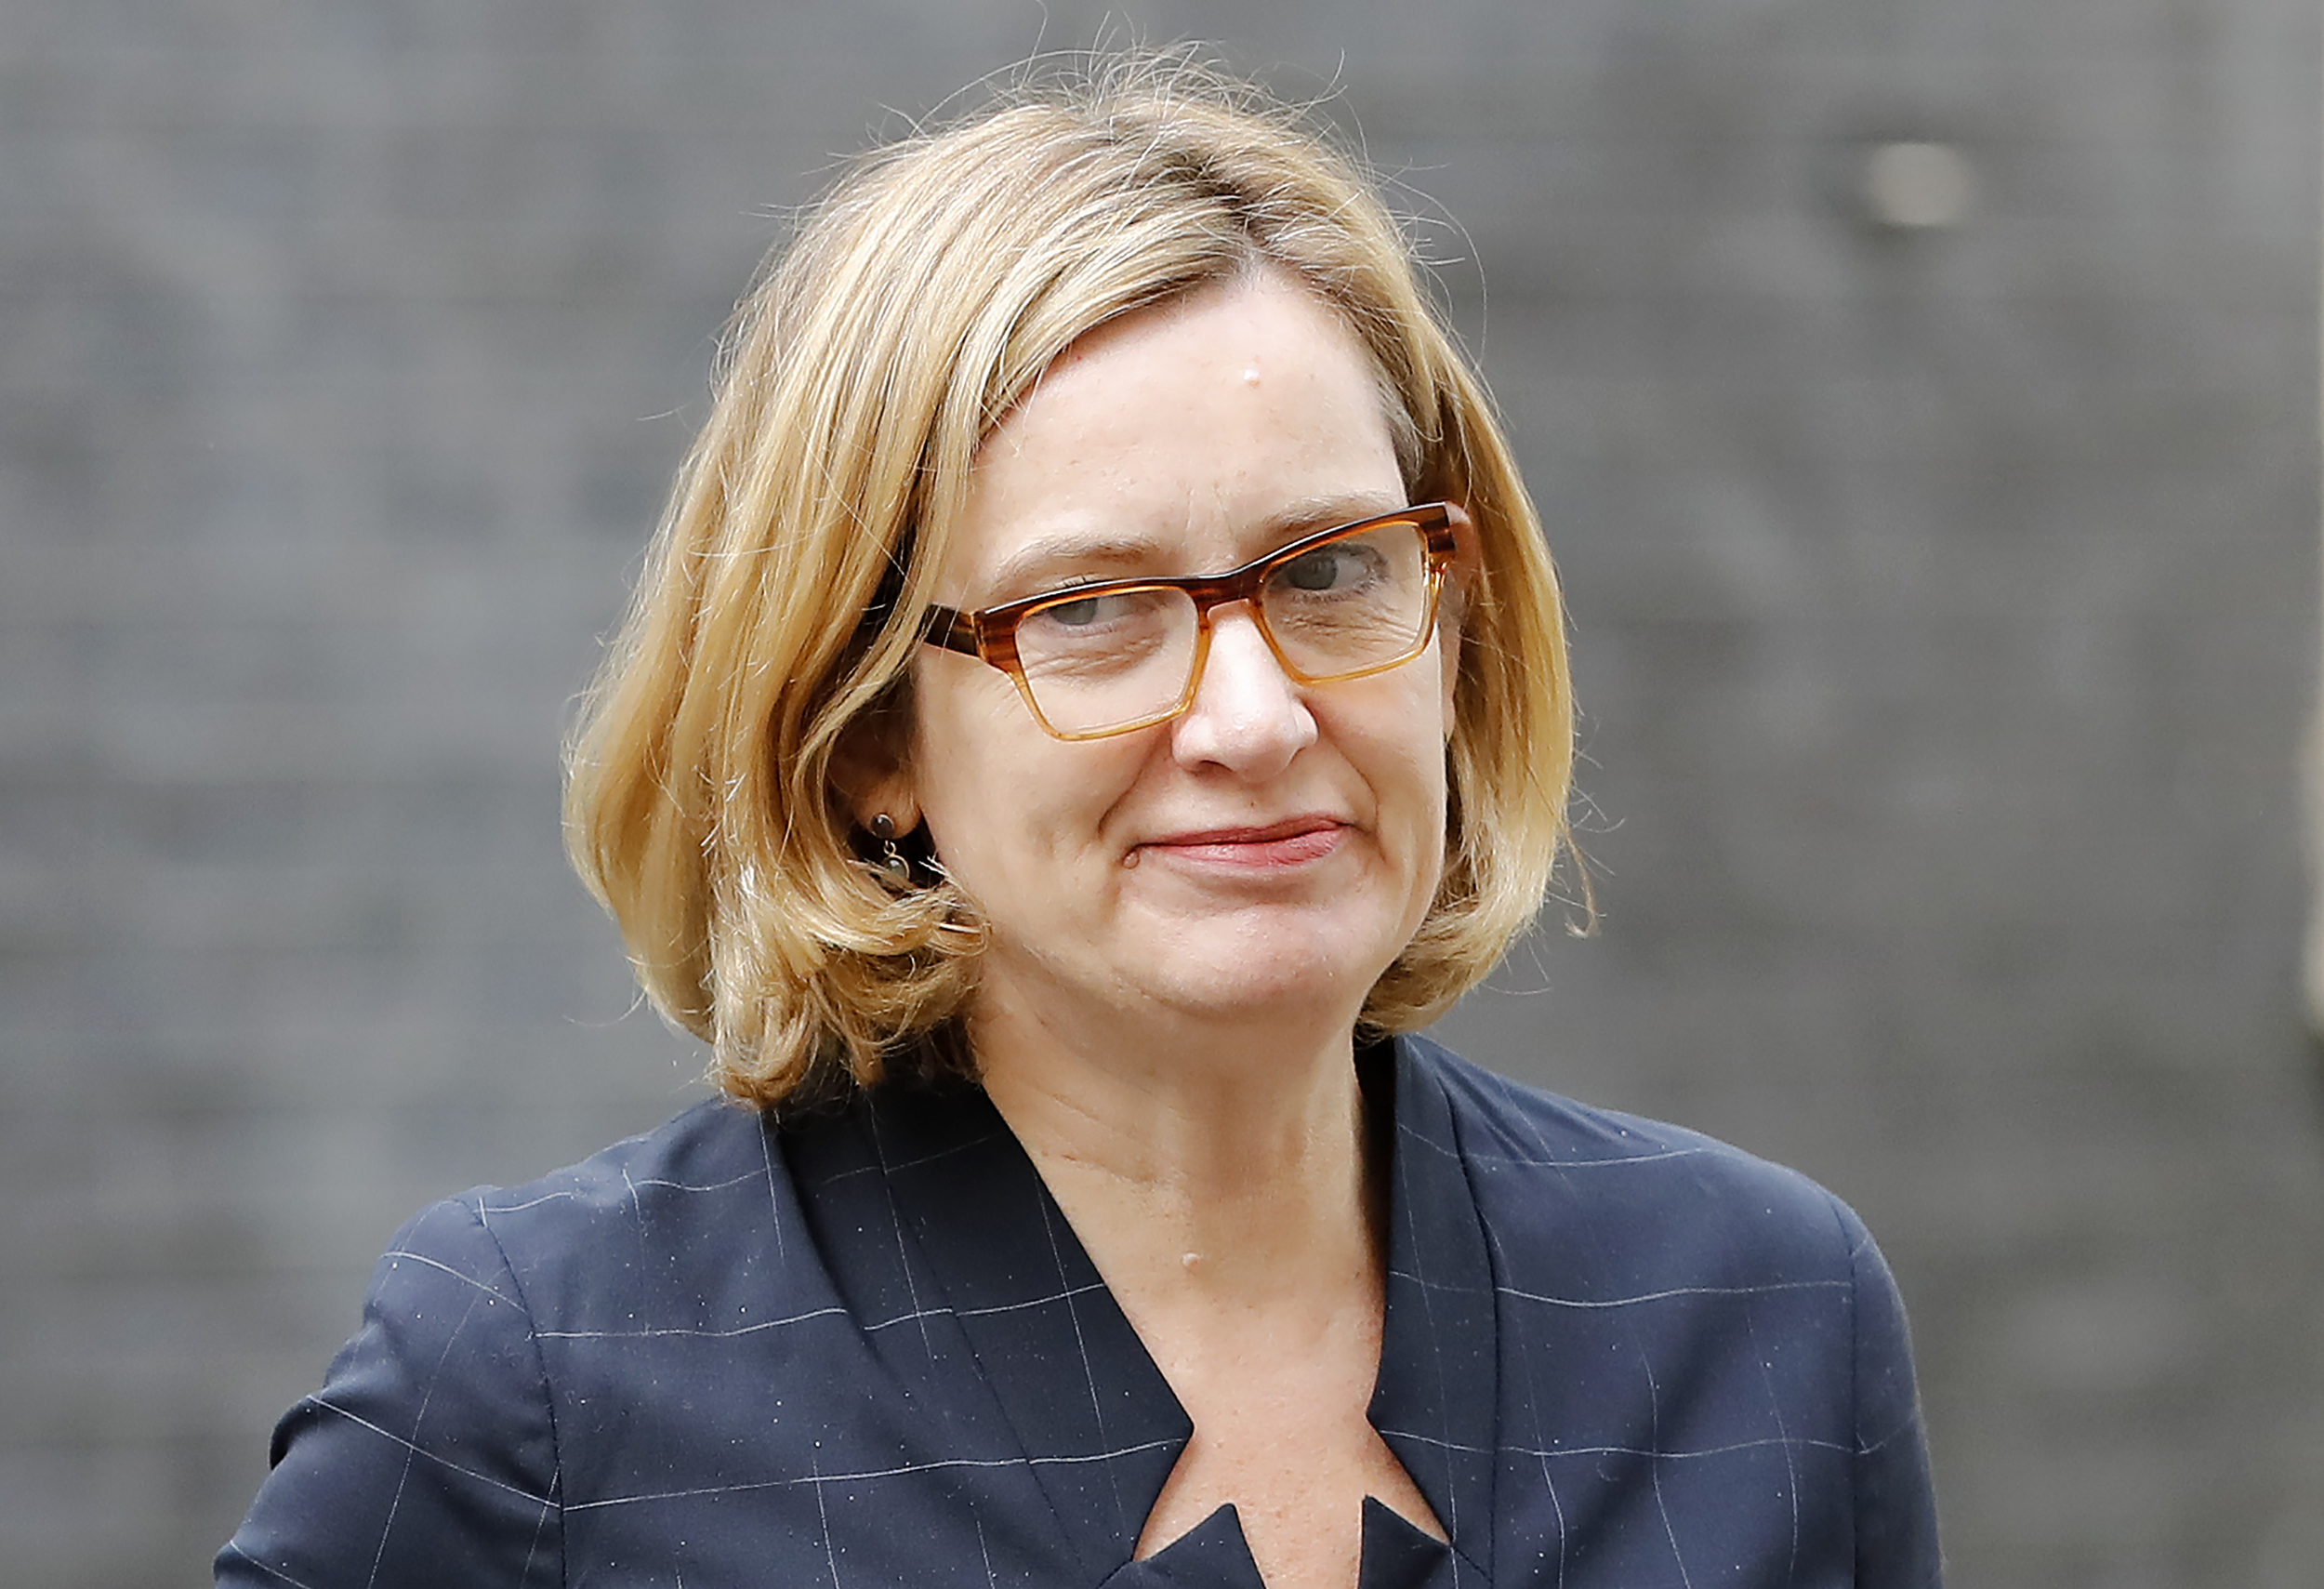 Amber Rudd returns to the Cabinet as Work and Pensions Secretary